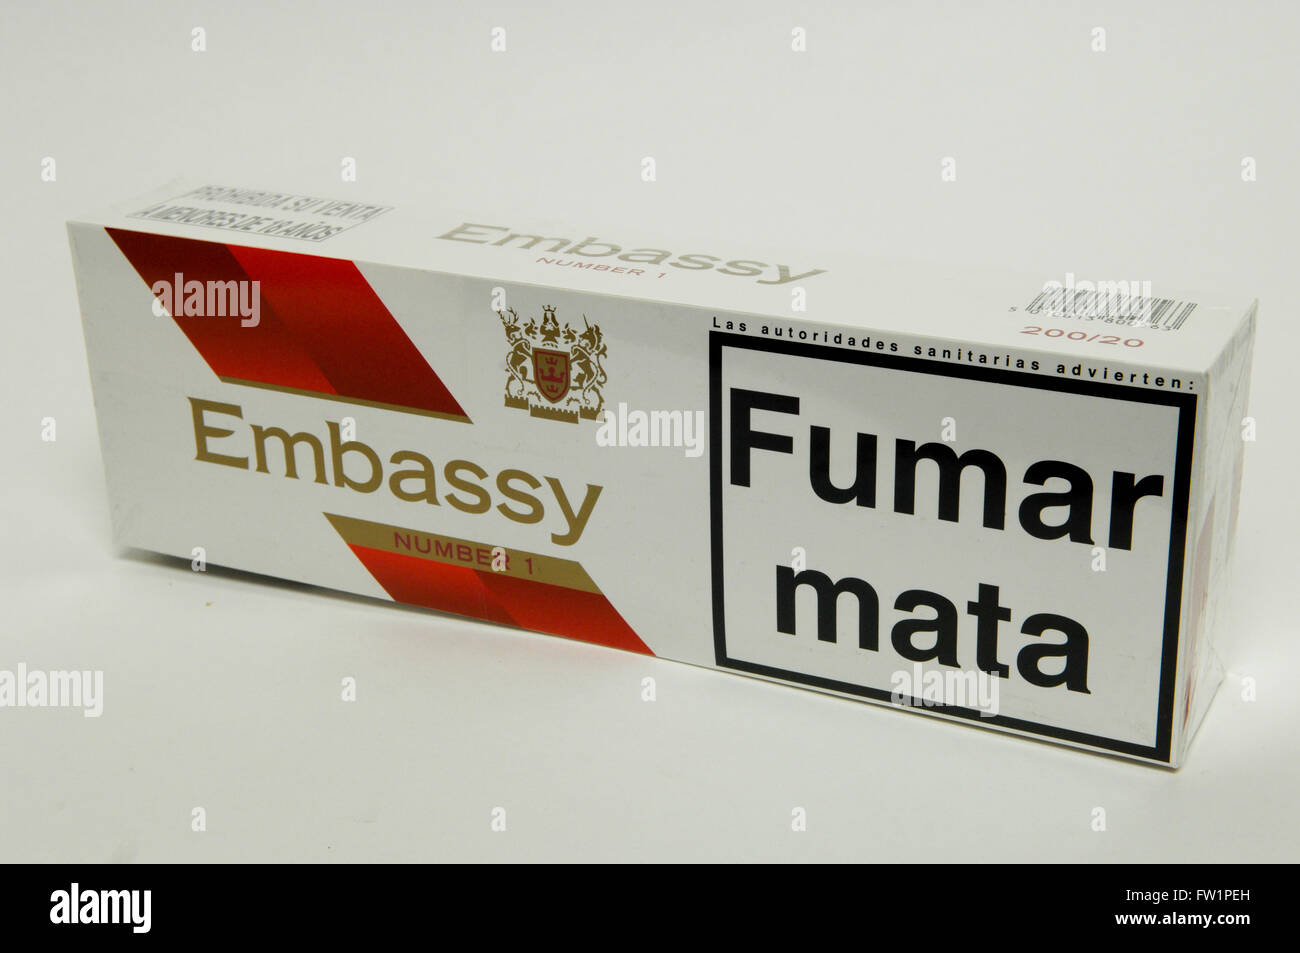 Cigarette Carton High Resolution Stock Photography And Images Alamy